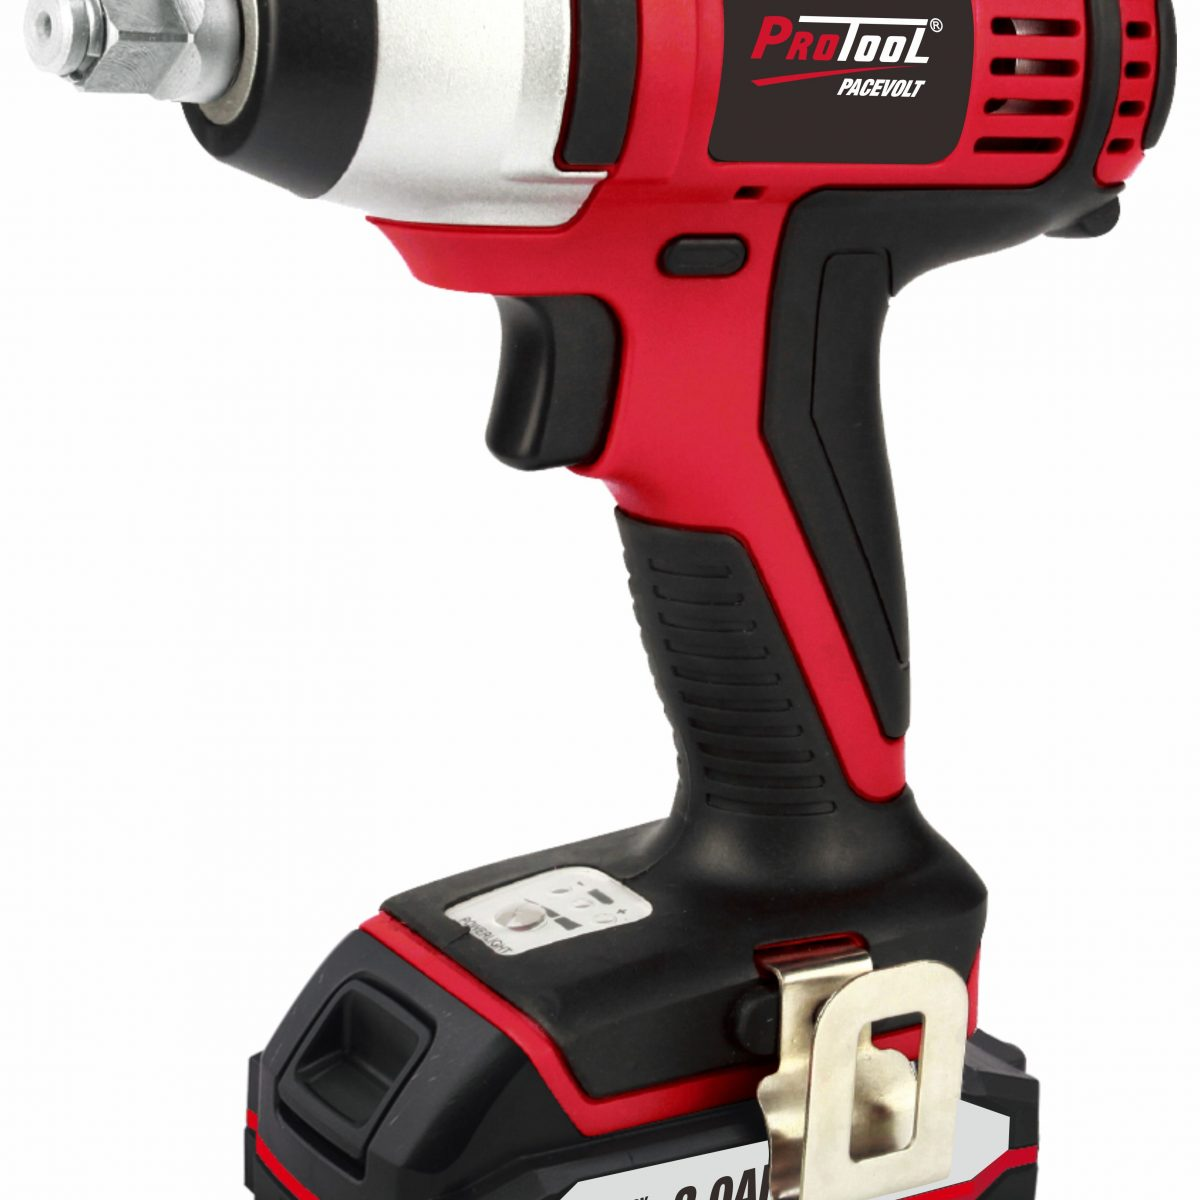 PROTOOL 20V CORDLESS IMPACT WRENCH WITH 2 X 2AH BATTERIES